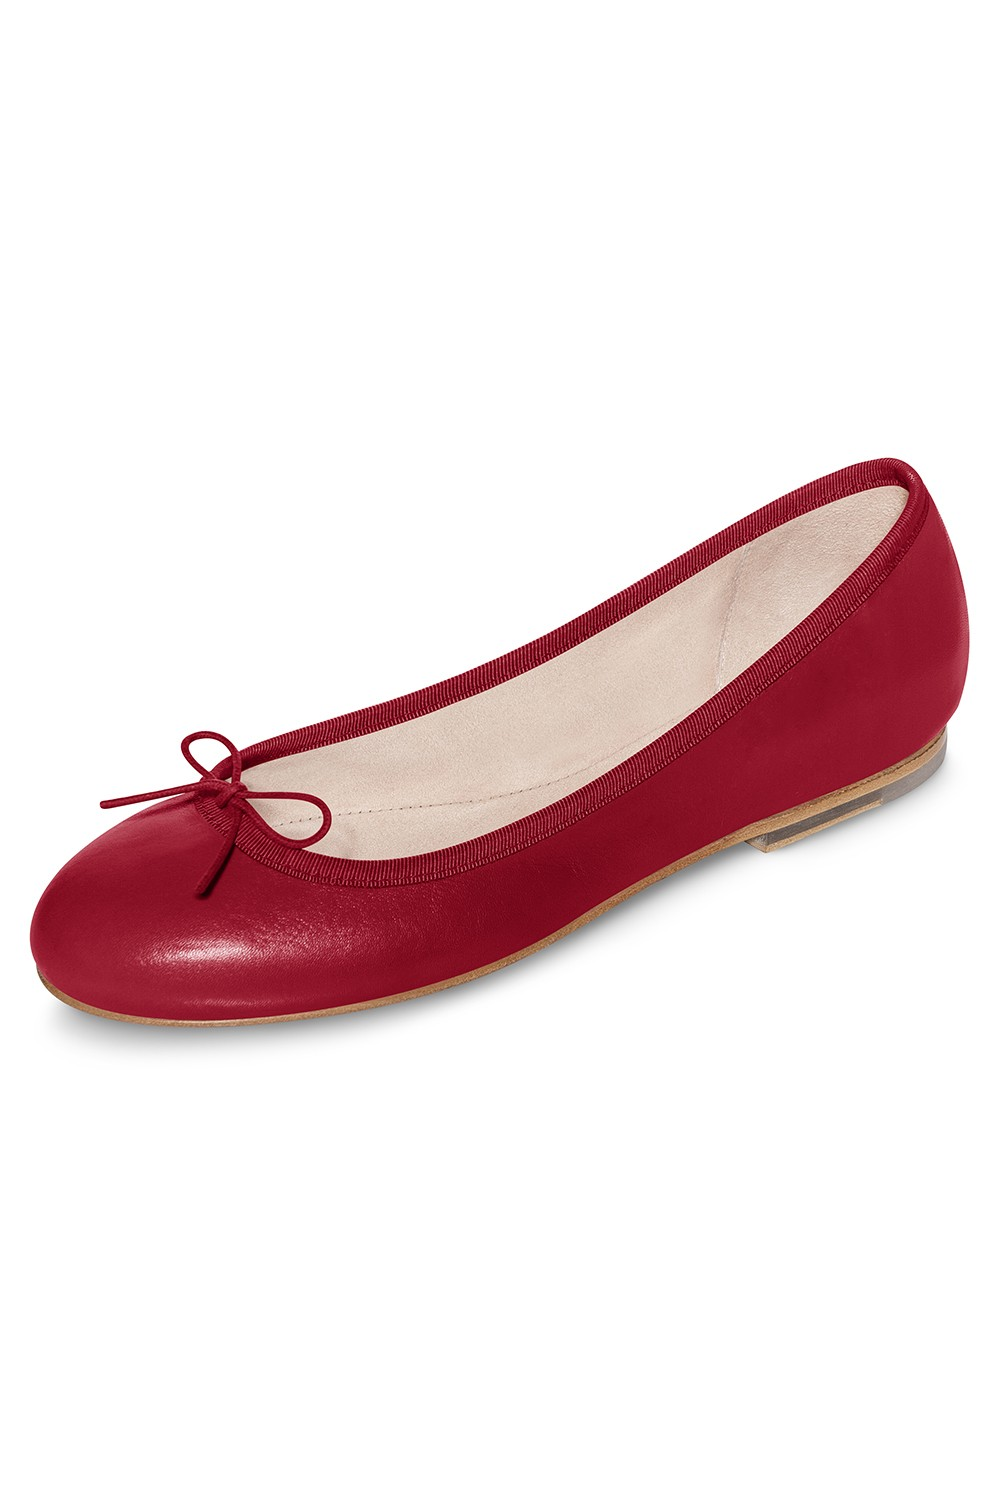 Prima Ballerina Womens Fashion Shoes